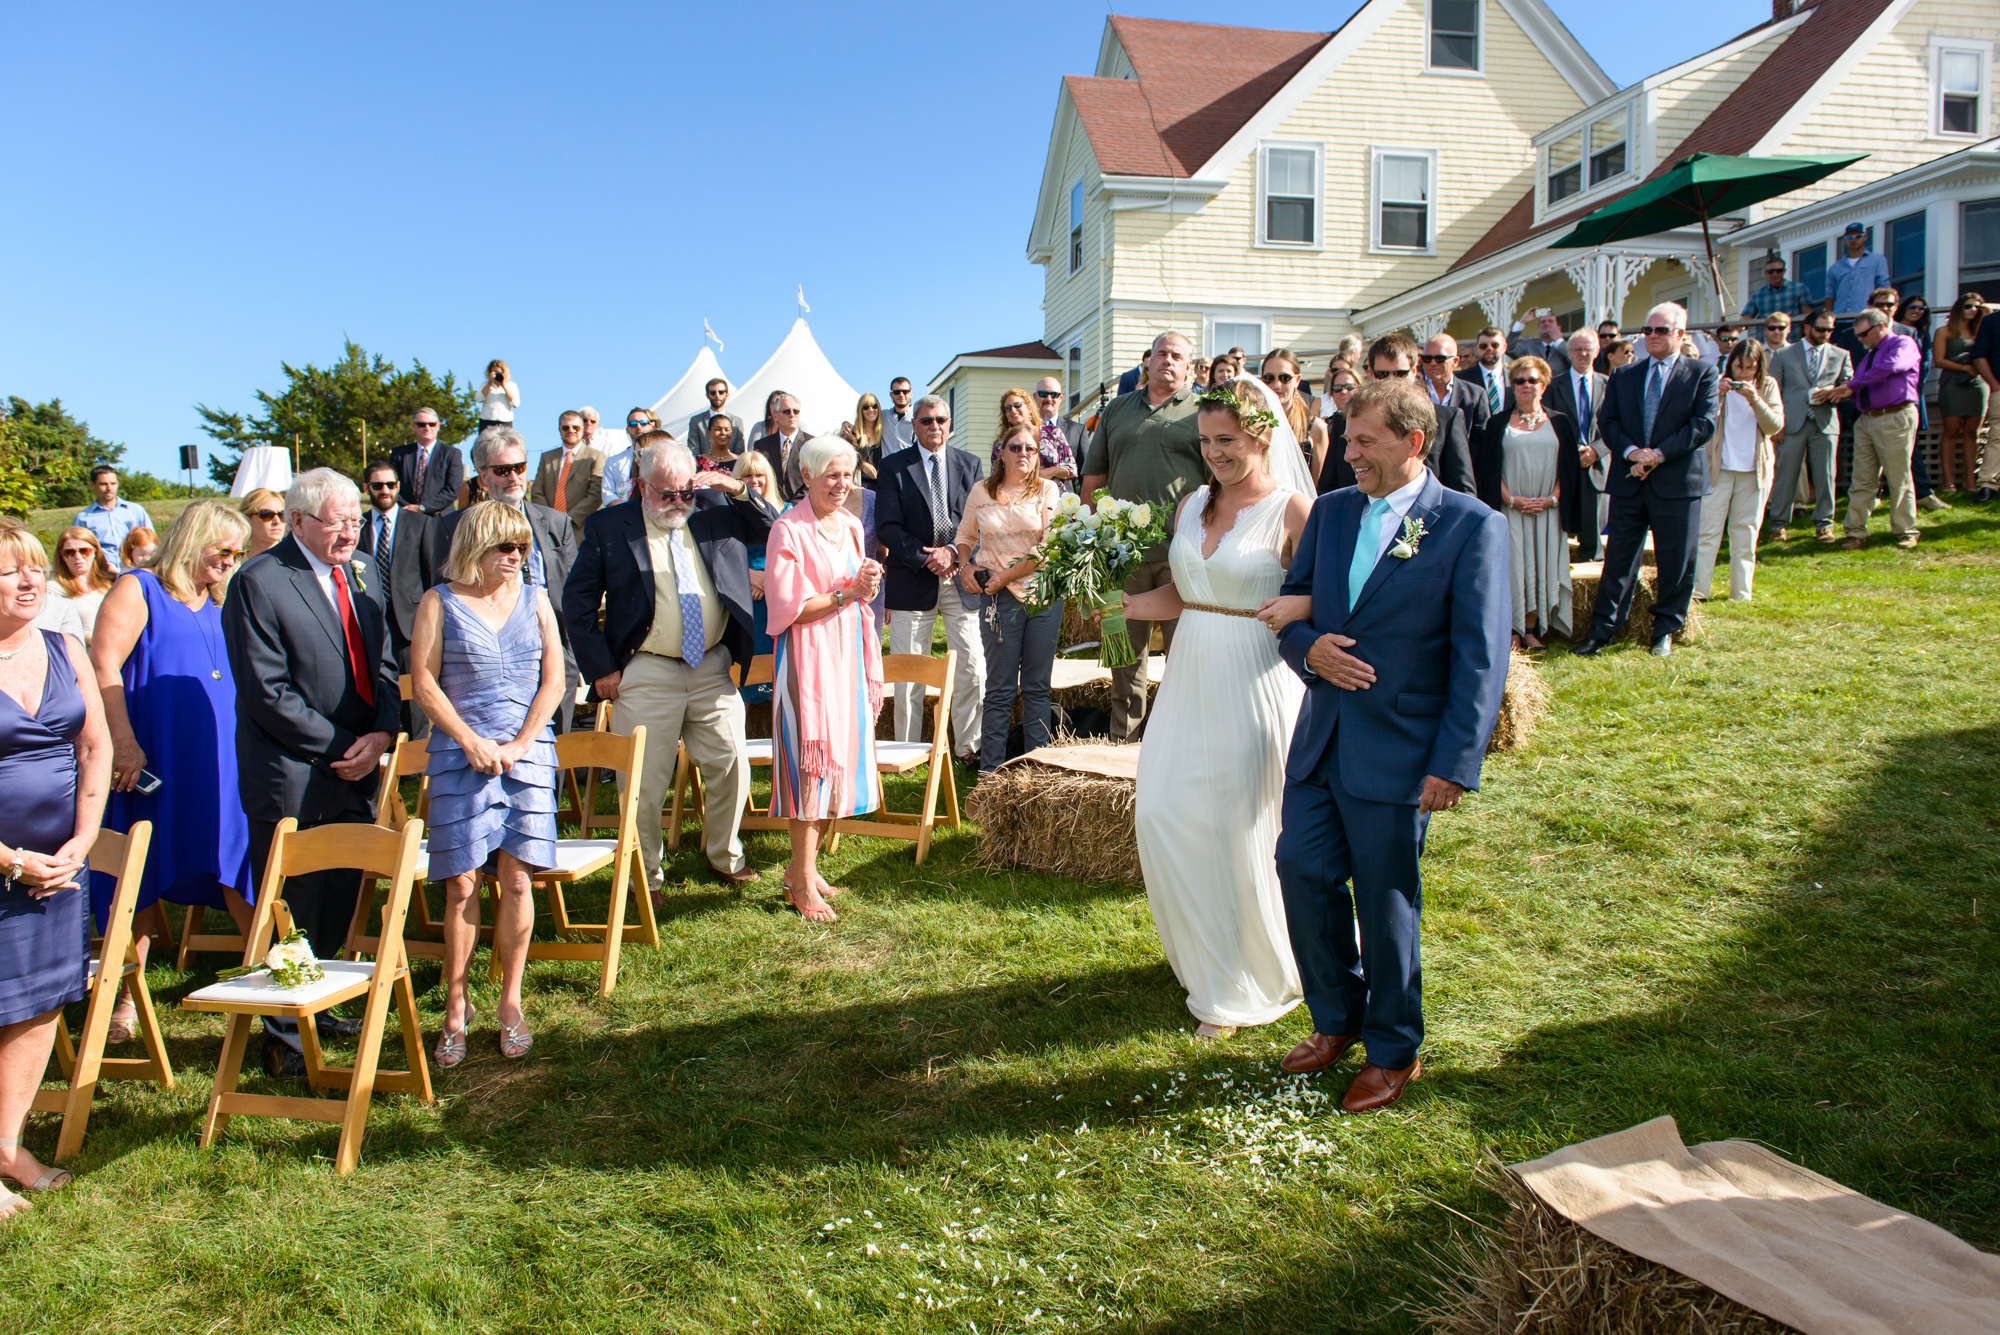 A father escorts his daughter to her wedding ceremony at The Tower House in Chilmark photo by David Welch Photography